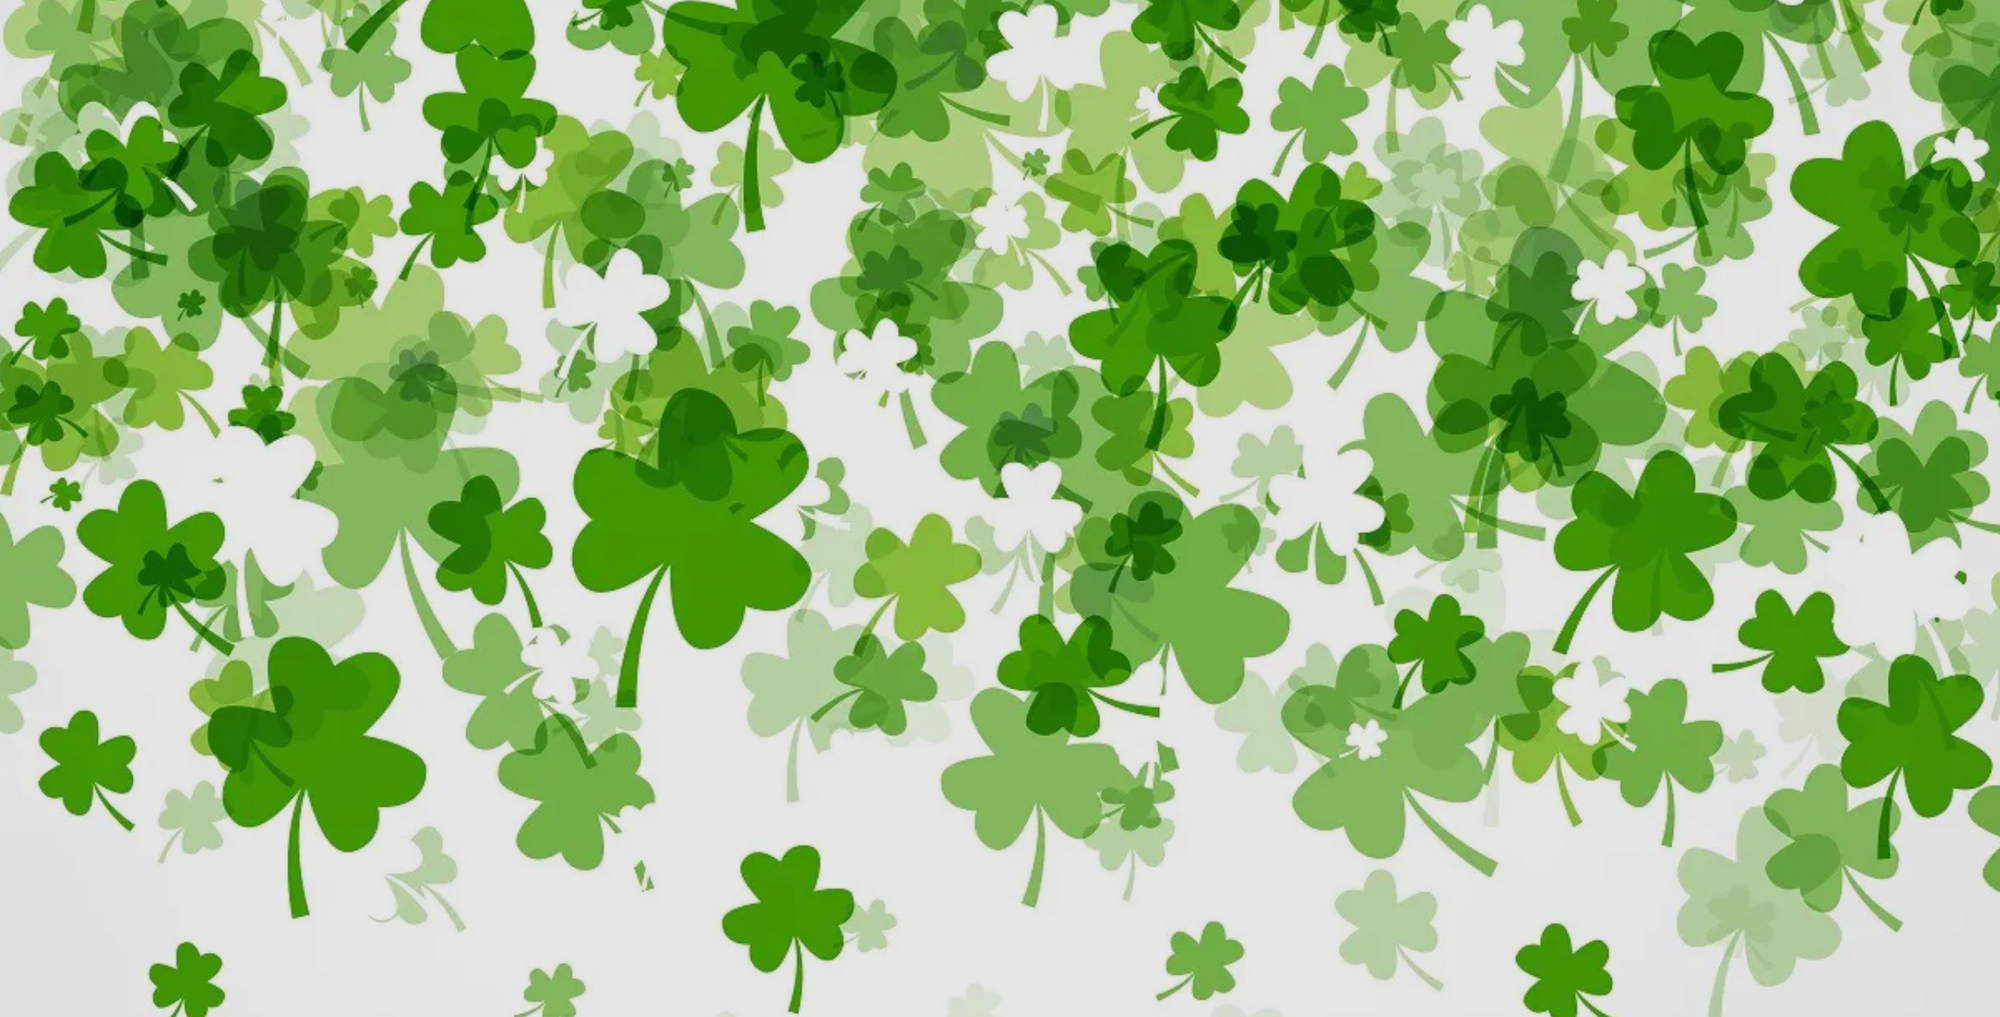 St. Patrick's Day! What can we learn from the Irish?